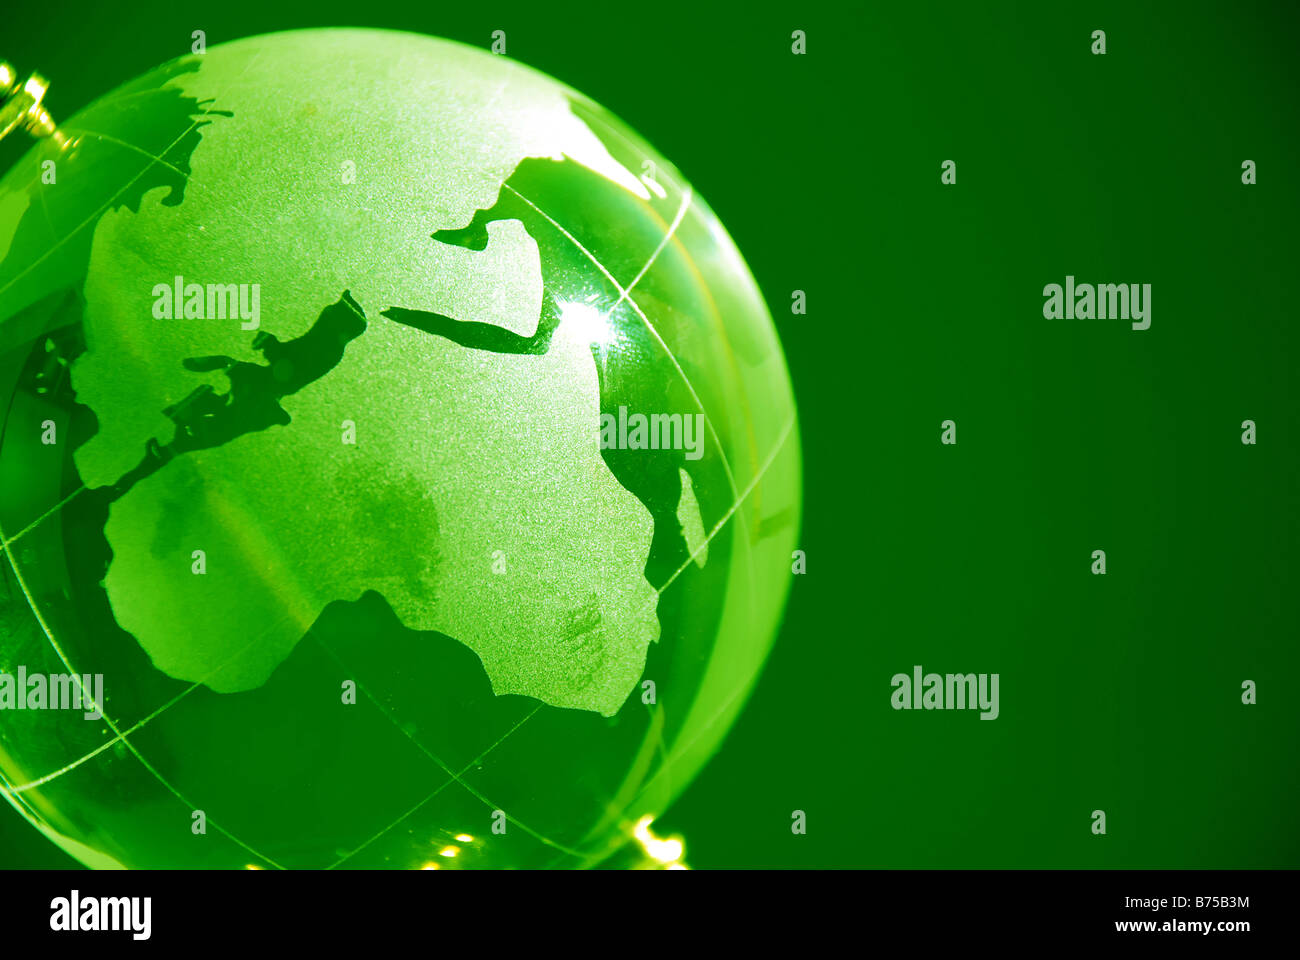 Very High Resolution World Map Stock Photos & Very High Resolution ...